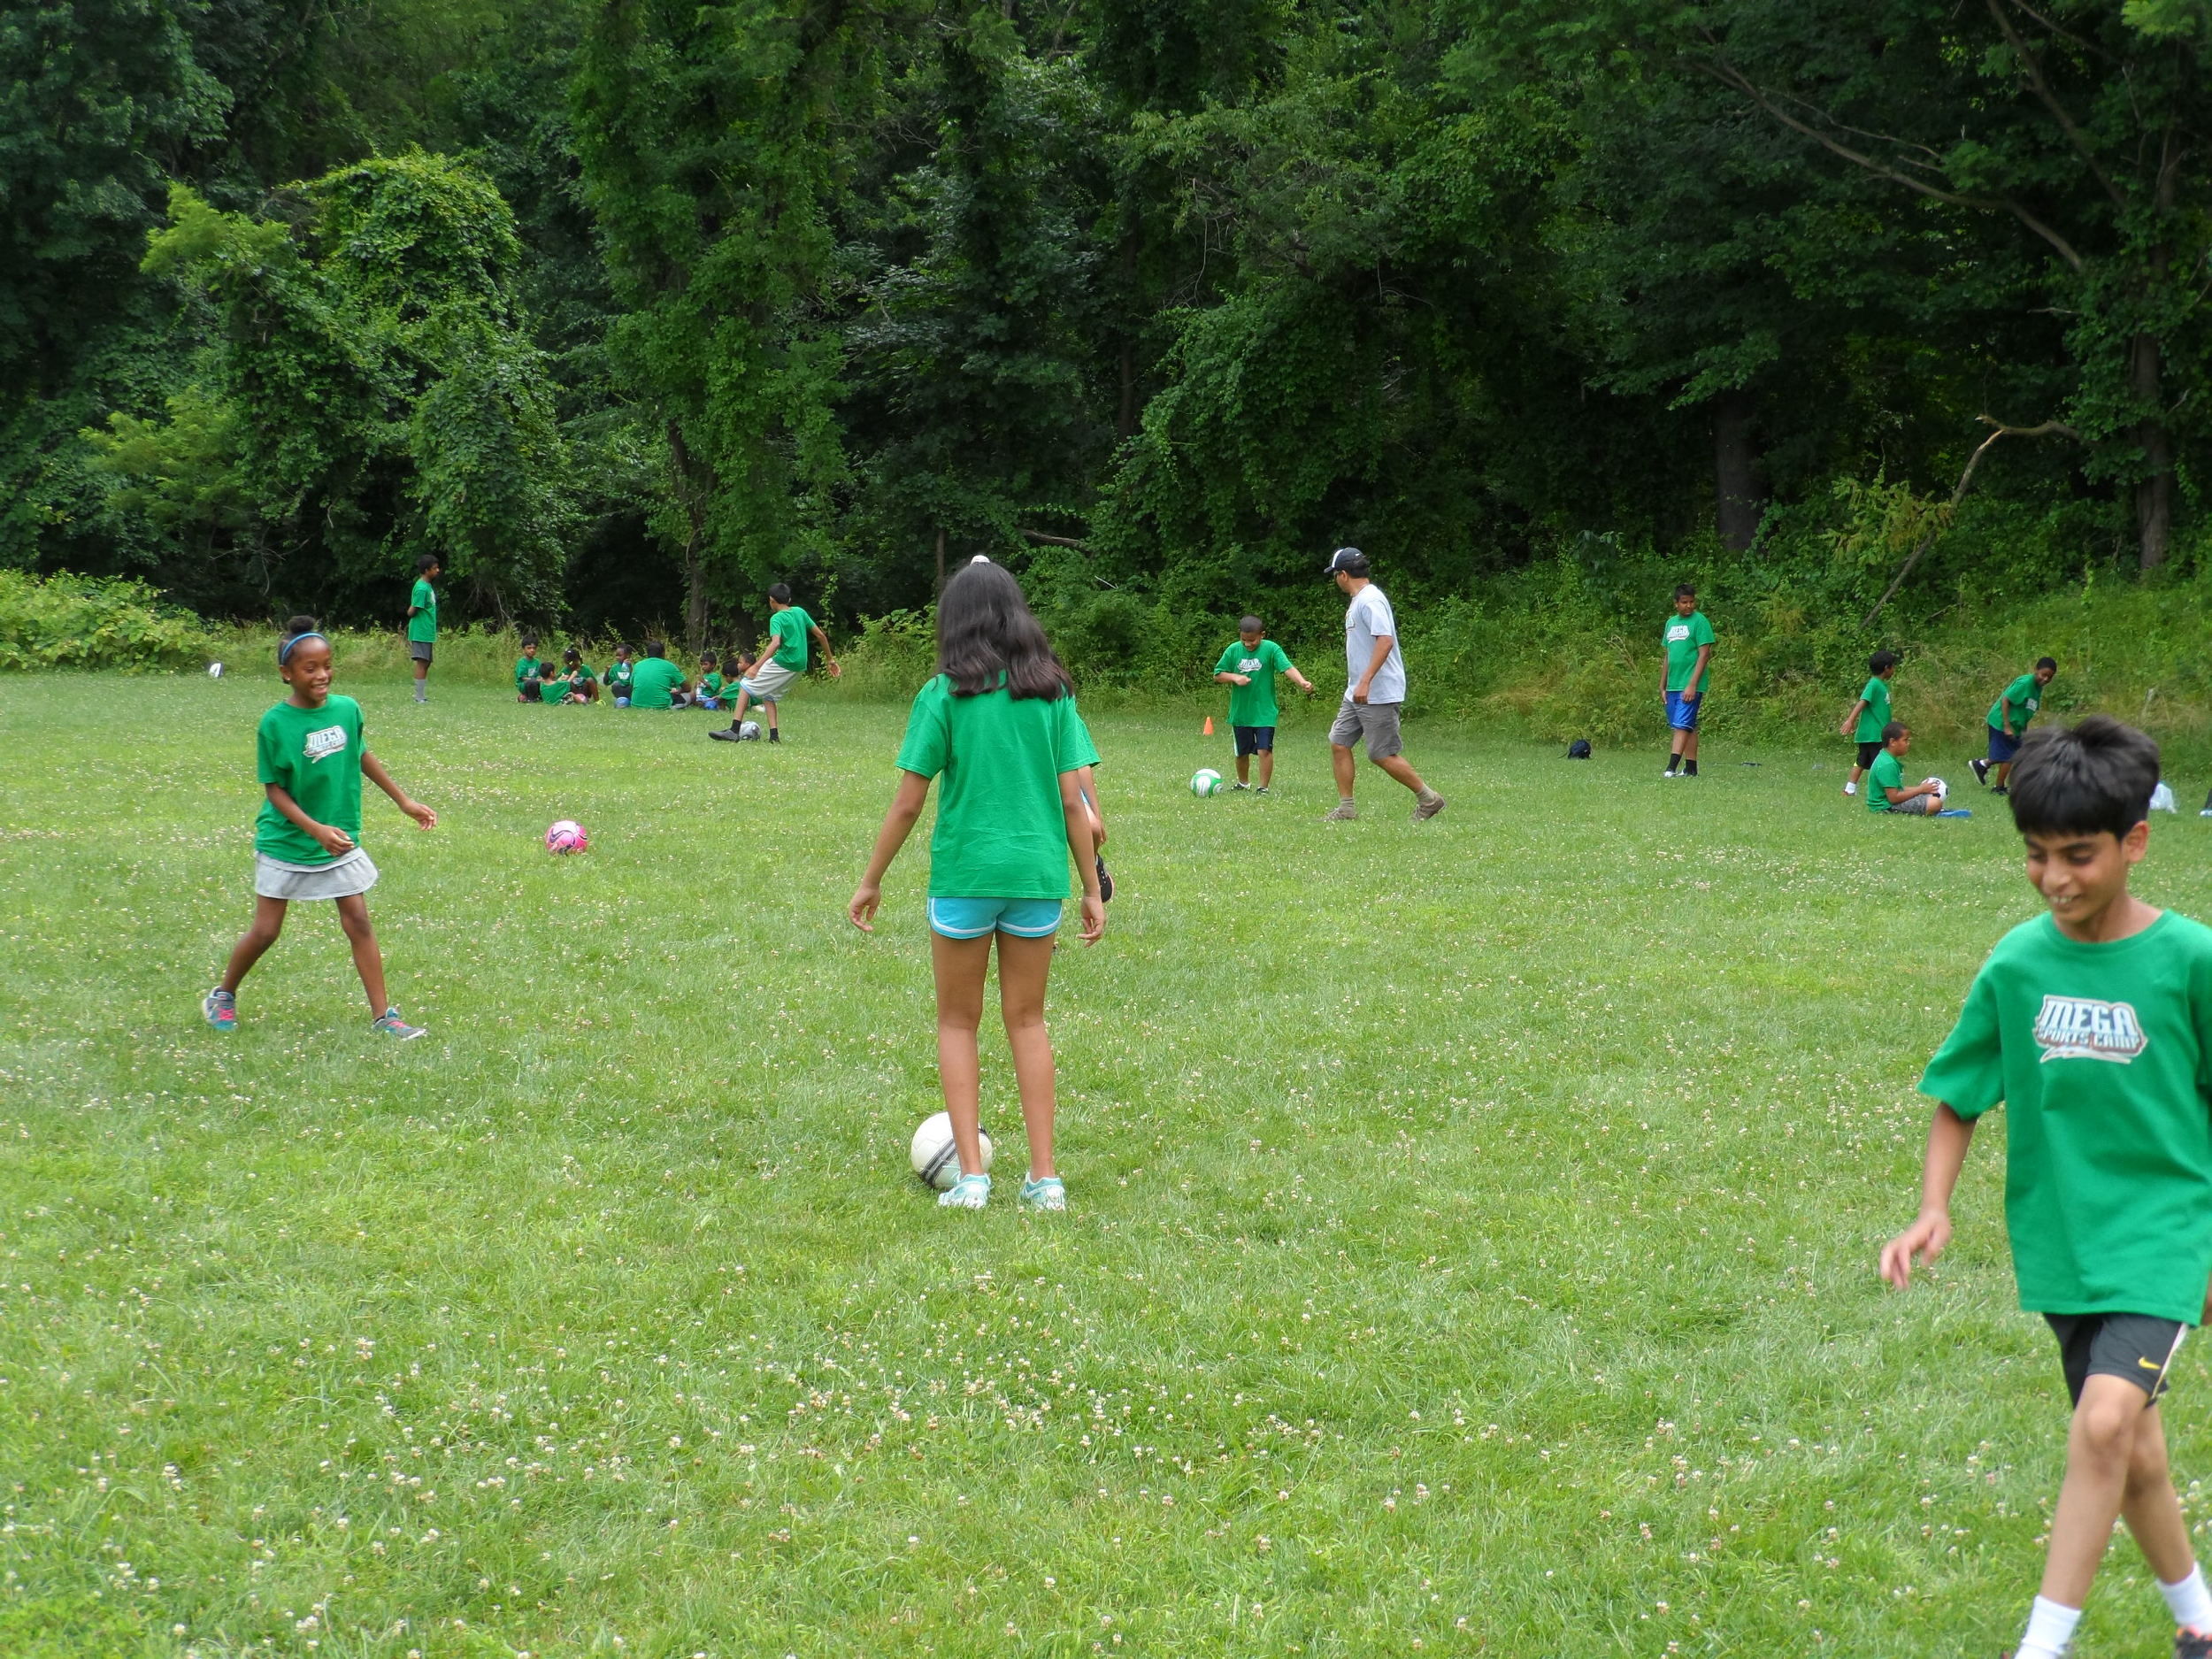 HICF VBS 2015 - Soccer practice